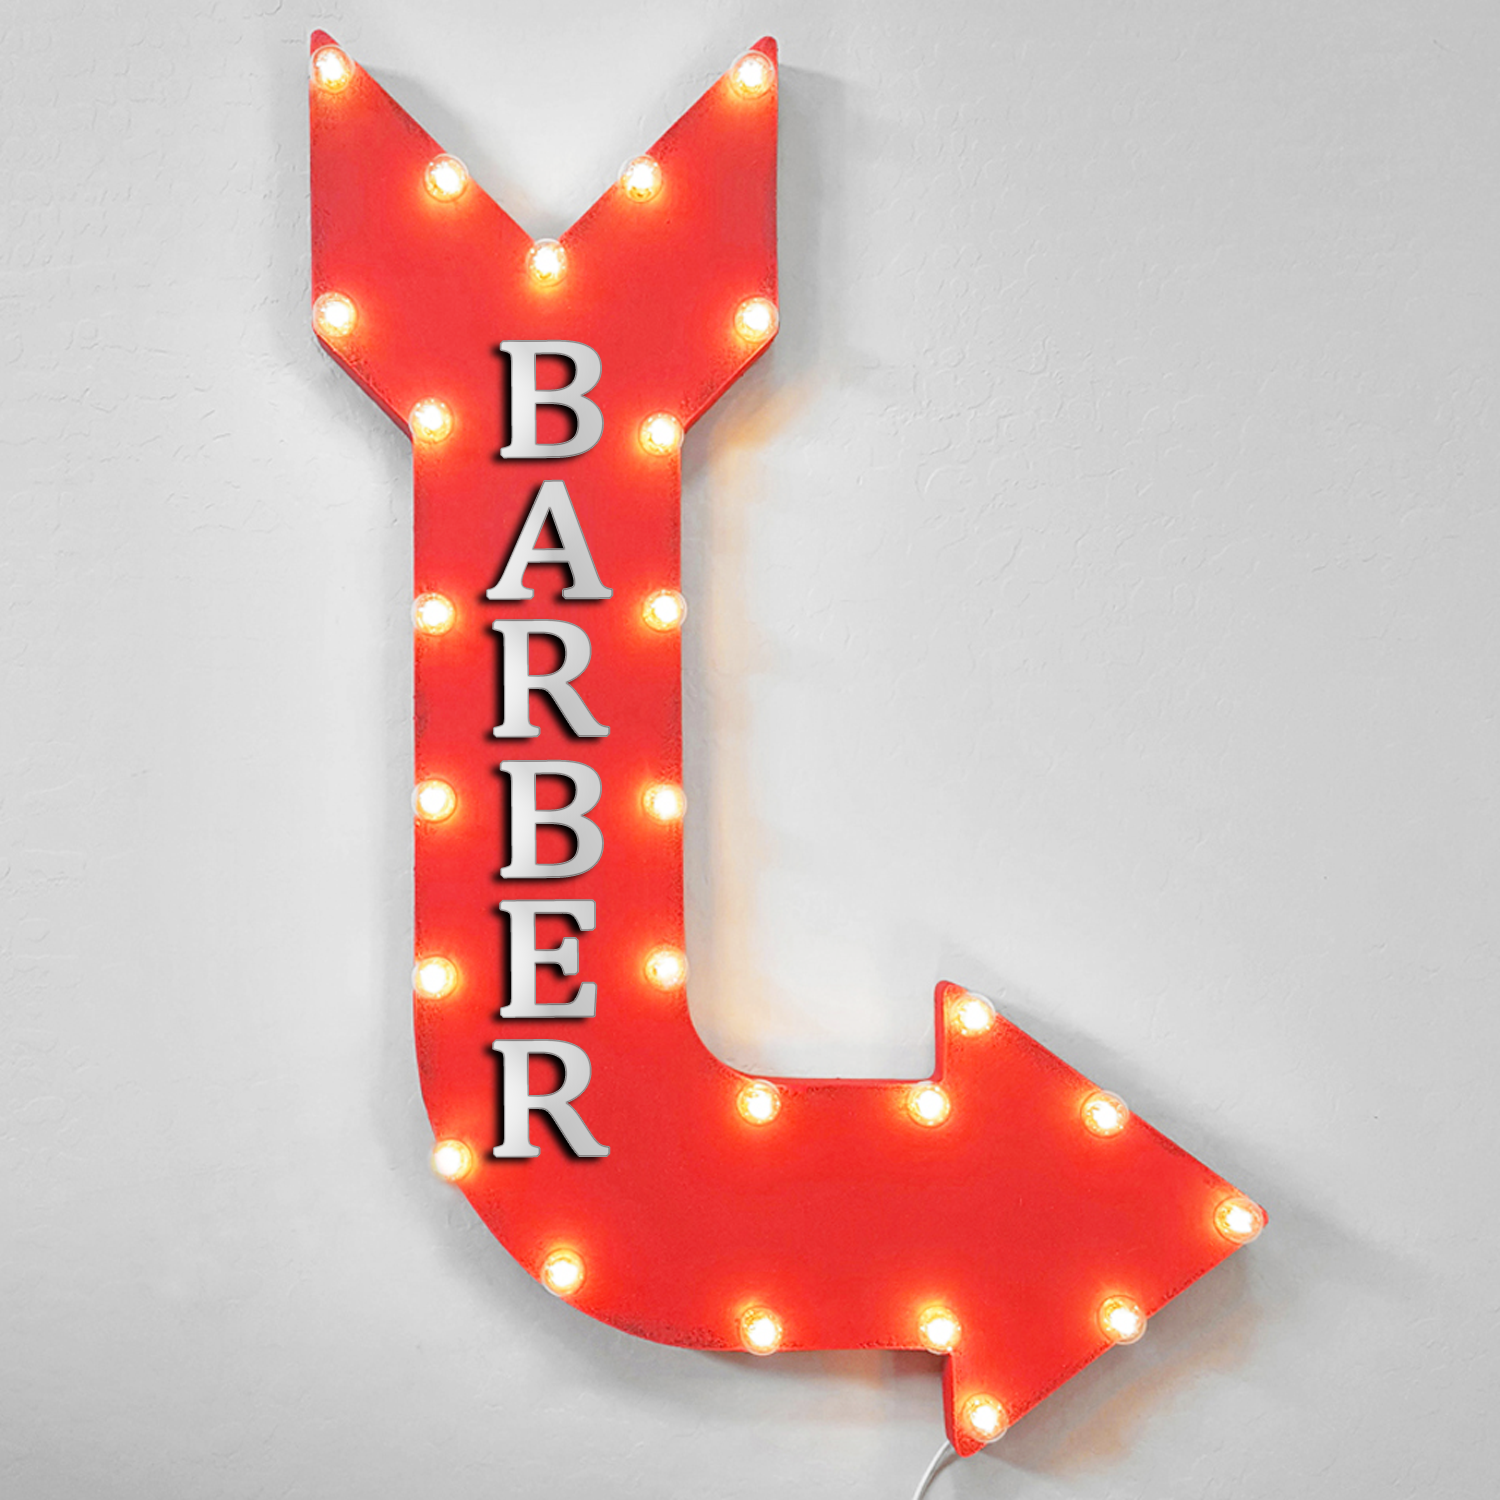 36  BARBER Curved Arrow Sign Light Up Metal Marquee Vintage Cafe Hair Salon Cut